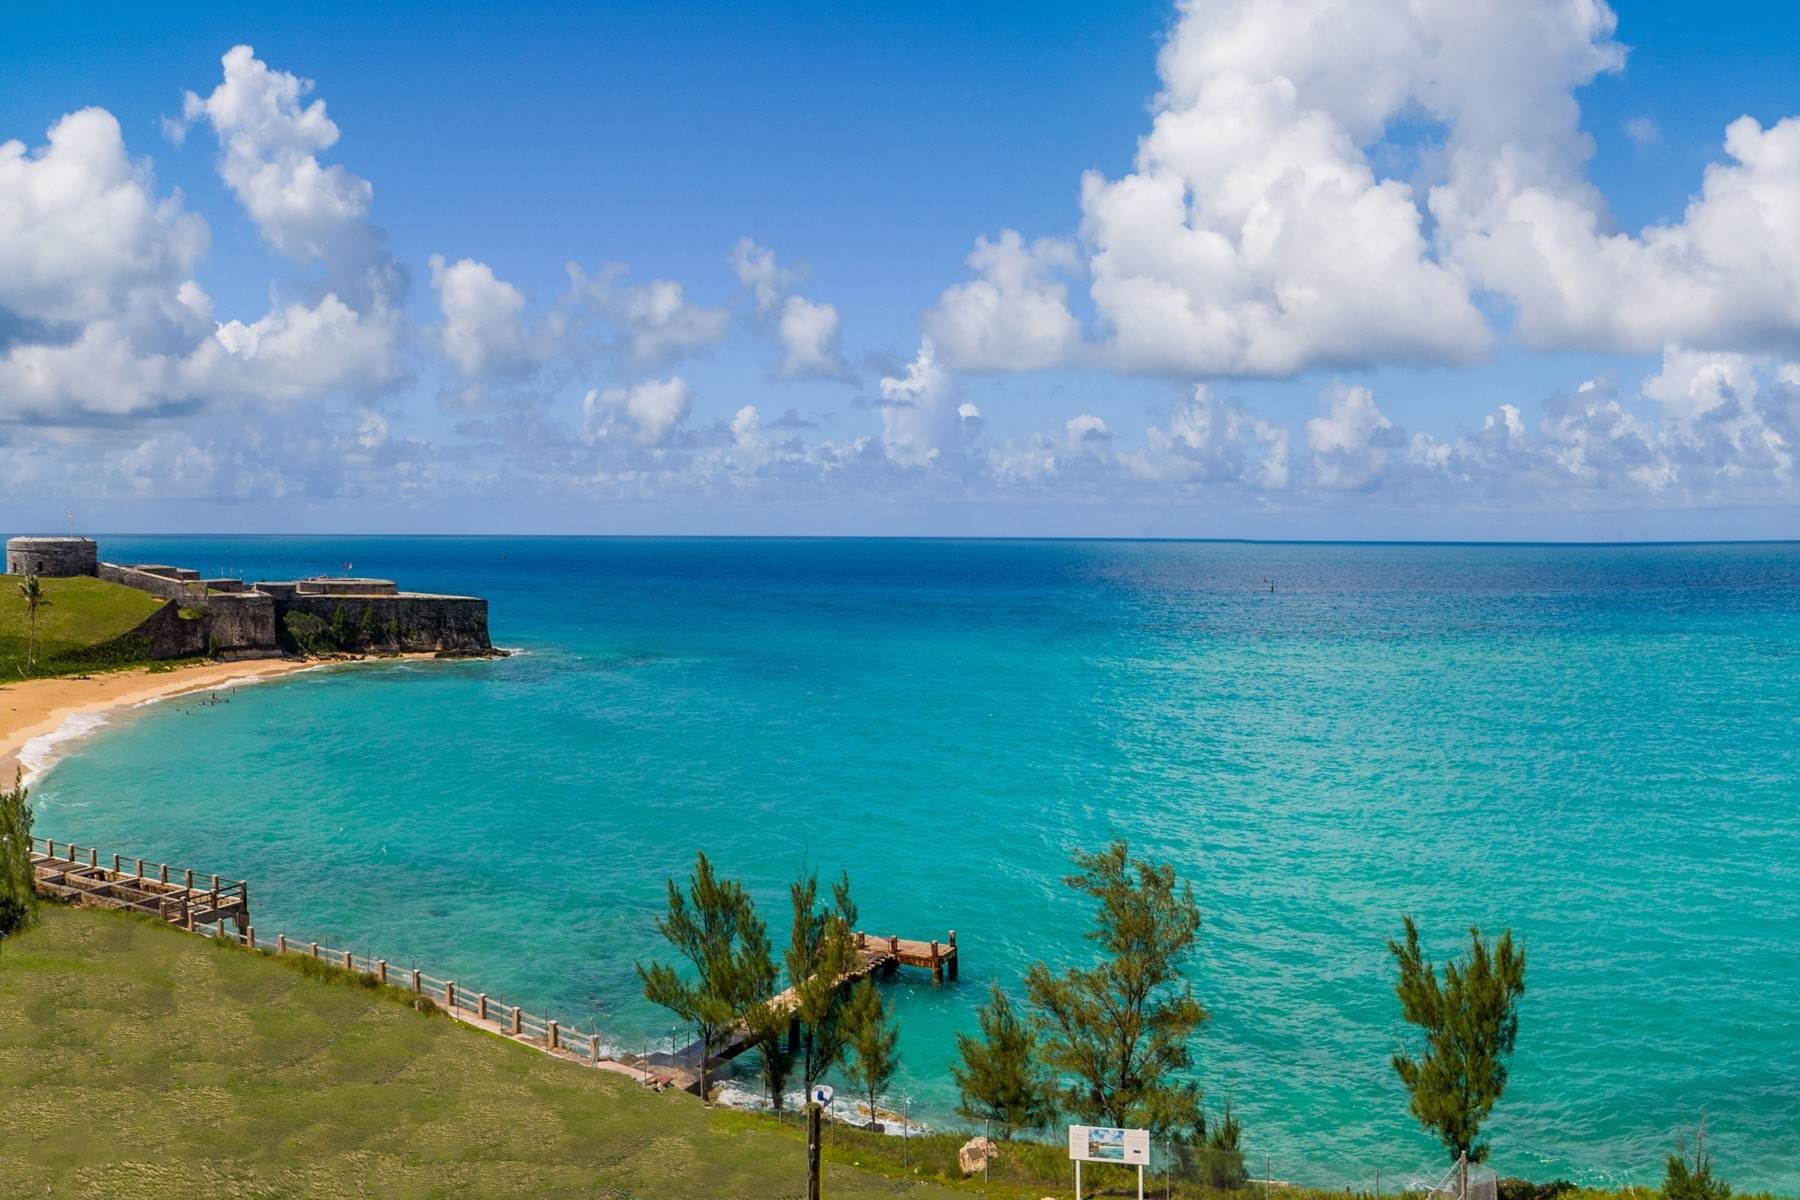 5. Condo / Townhouse / Flat for Sale at St. Regis Bermuda Residences - Gates Bay 4B St. Catherine's Beach St Georges Parish, GE03 Bermuda